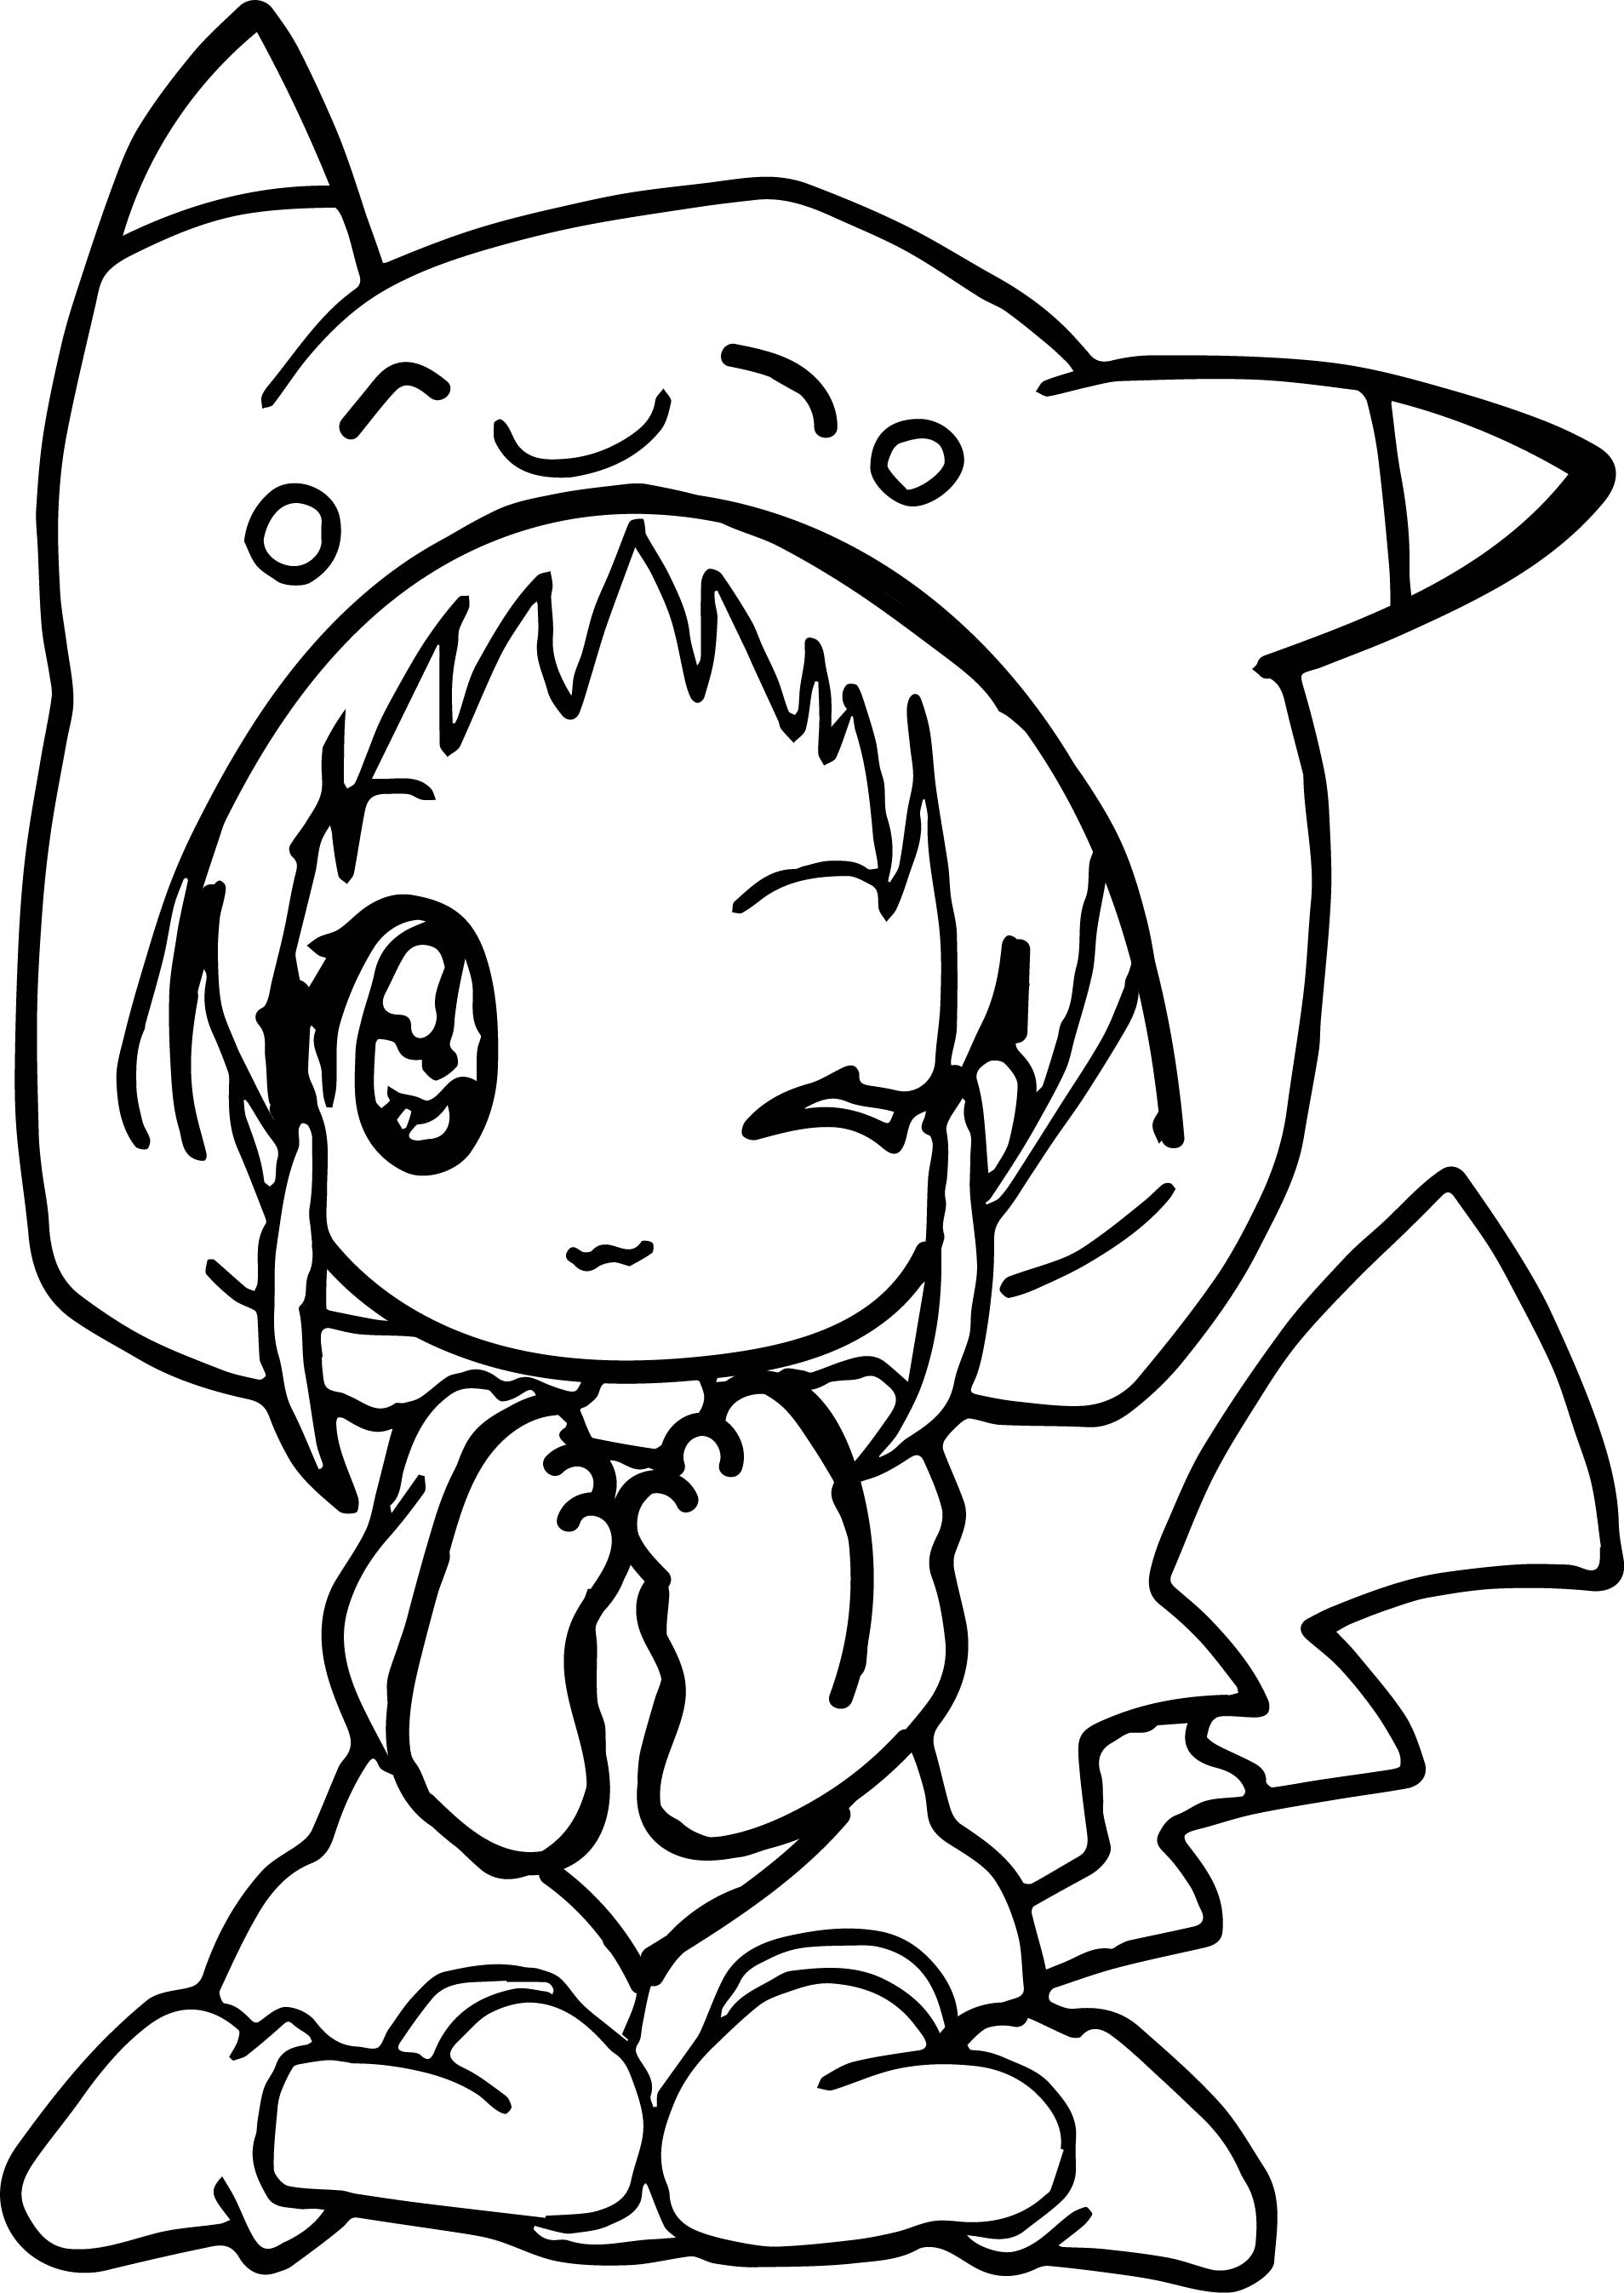 Anime Girl Pikachu Dress Coloring Page Wecoloringpage